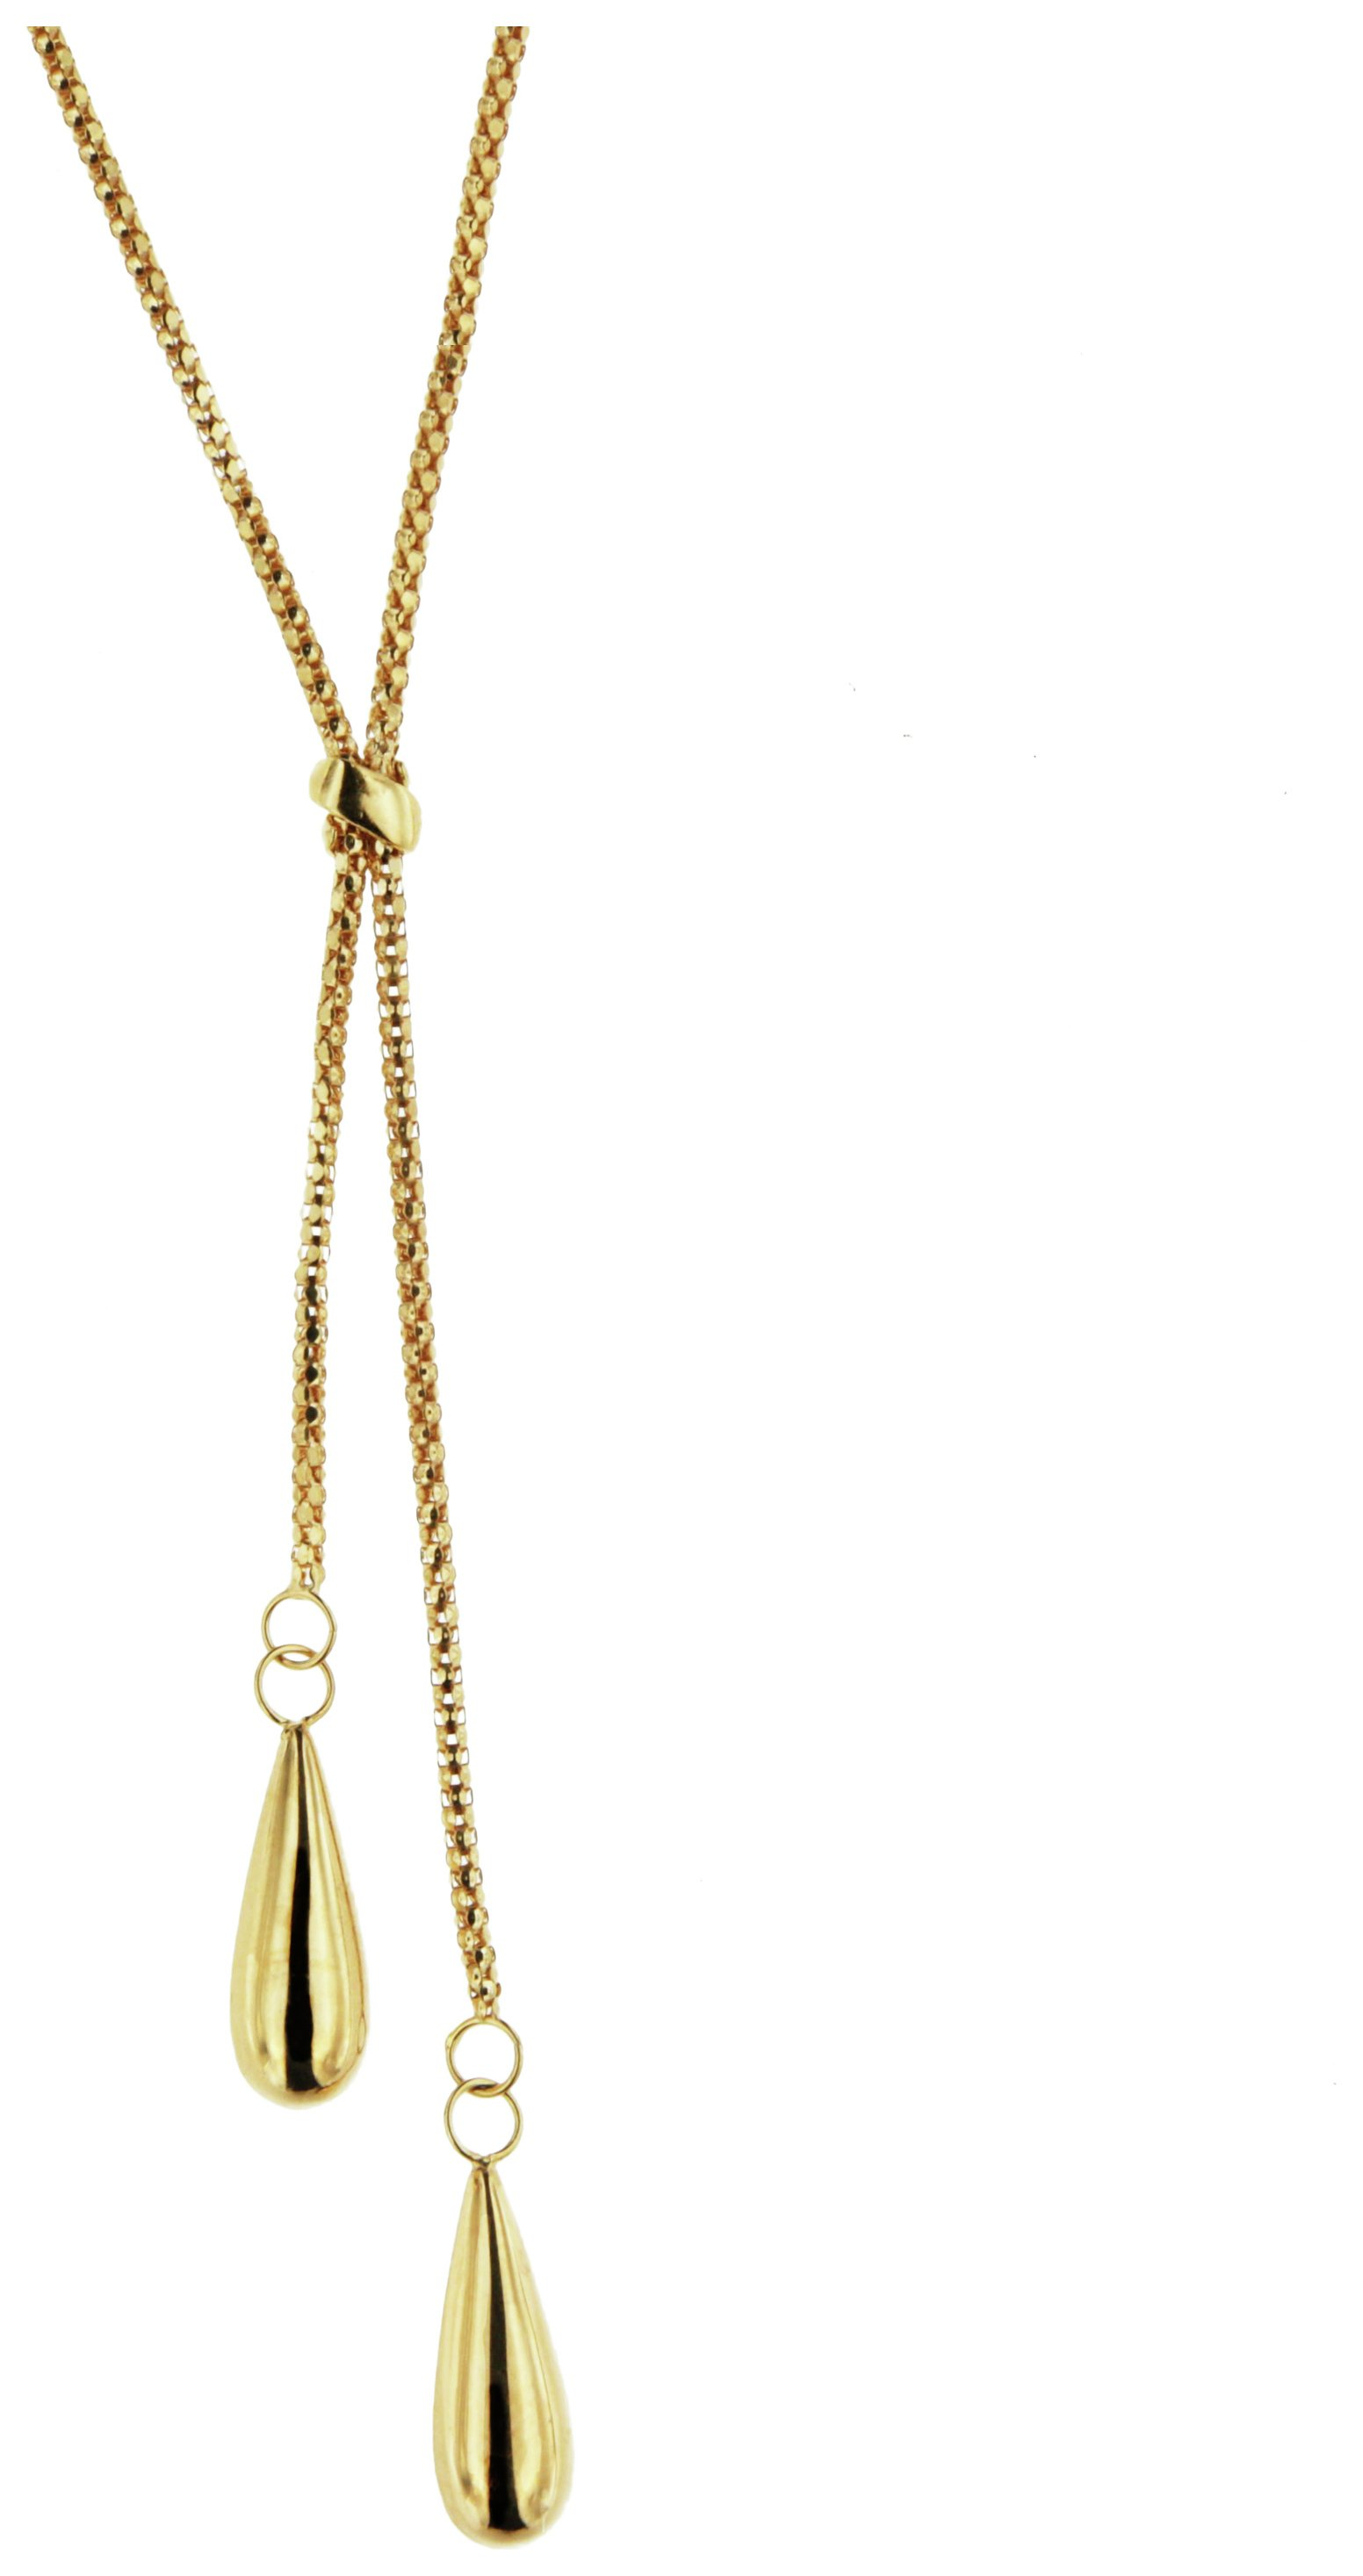 Image of Bracci - 9 Carat Gold - Teardrop Solid Look Popcorn Chain Necklace.